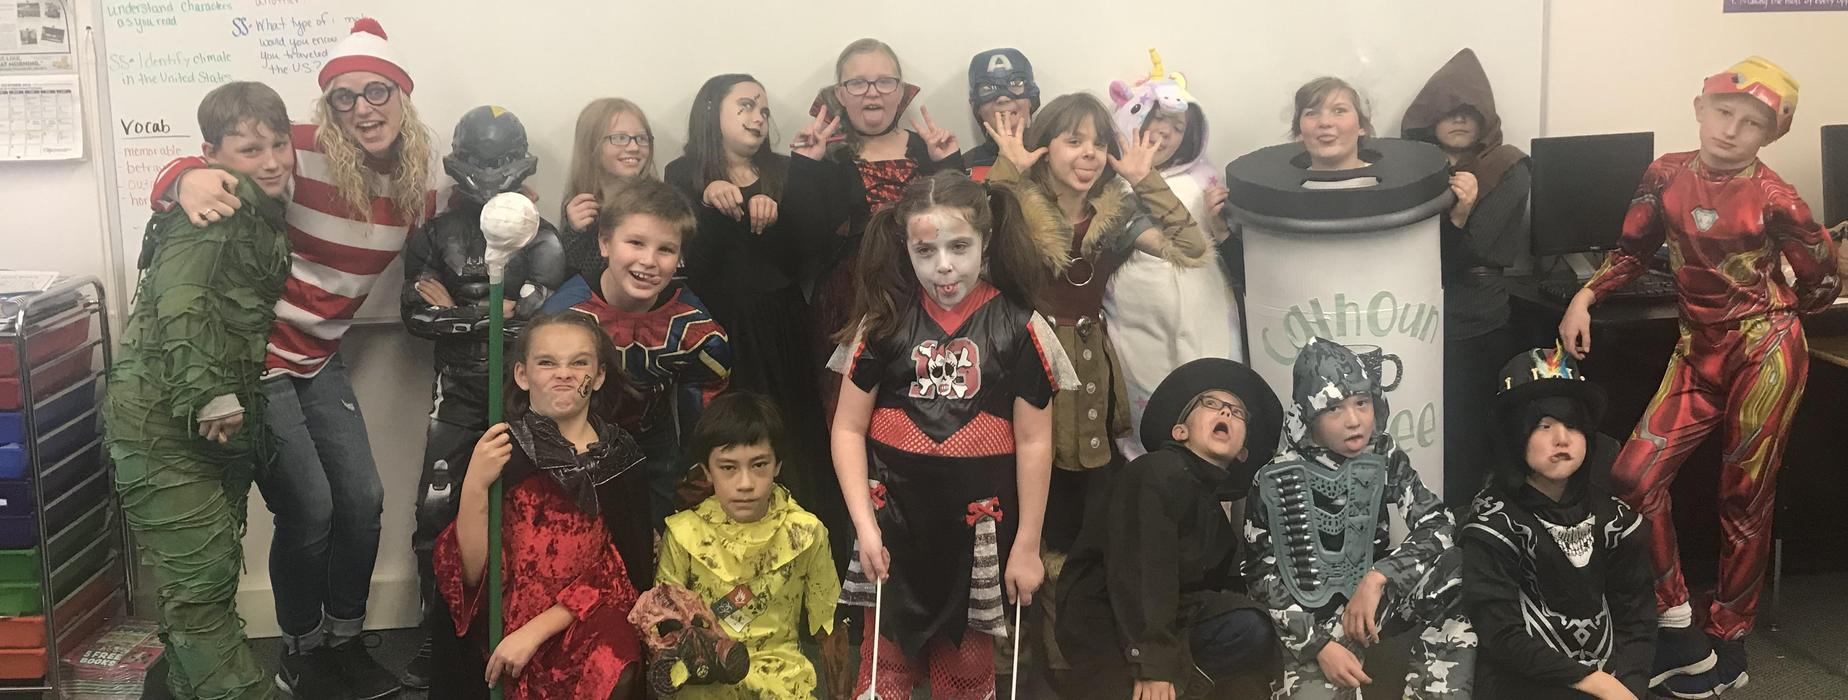 Ms. Stanberry's Class on Halloween